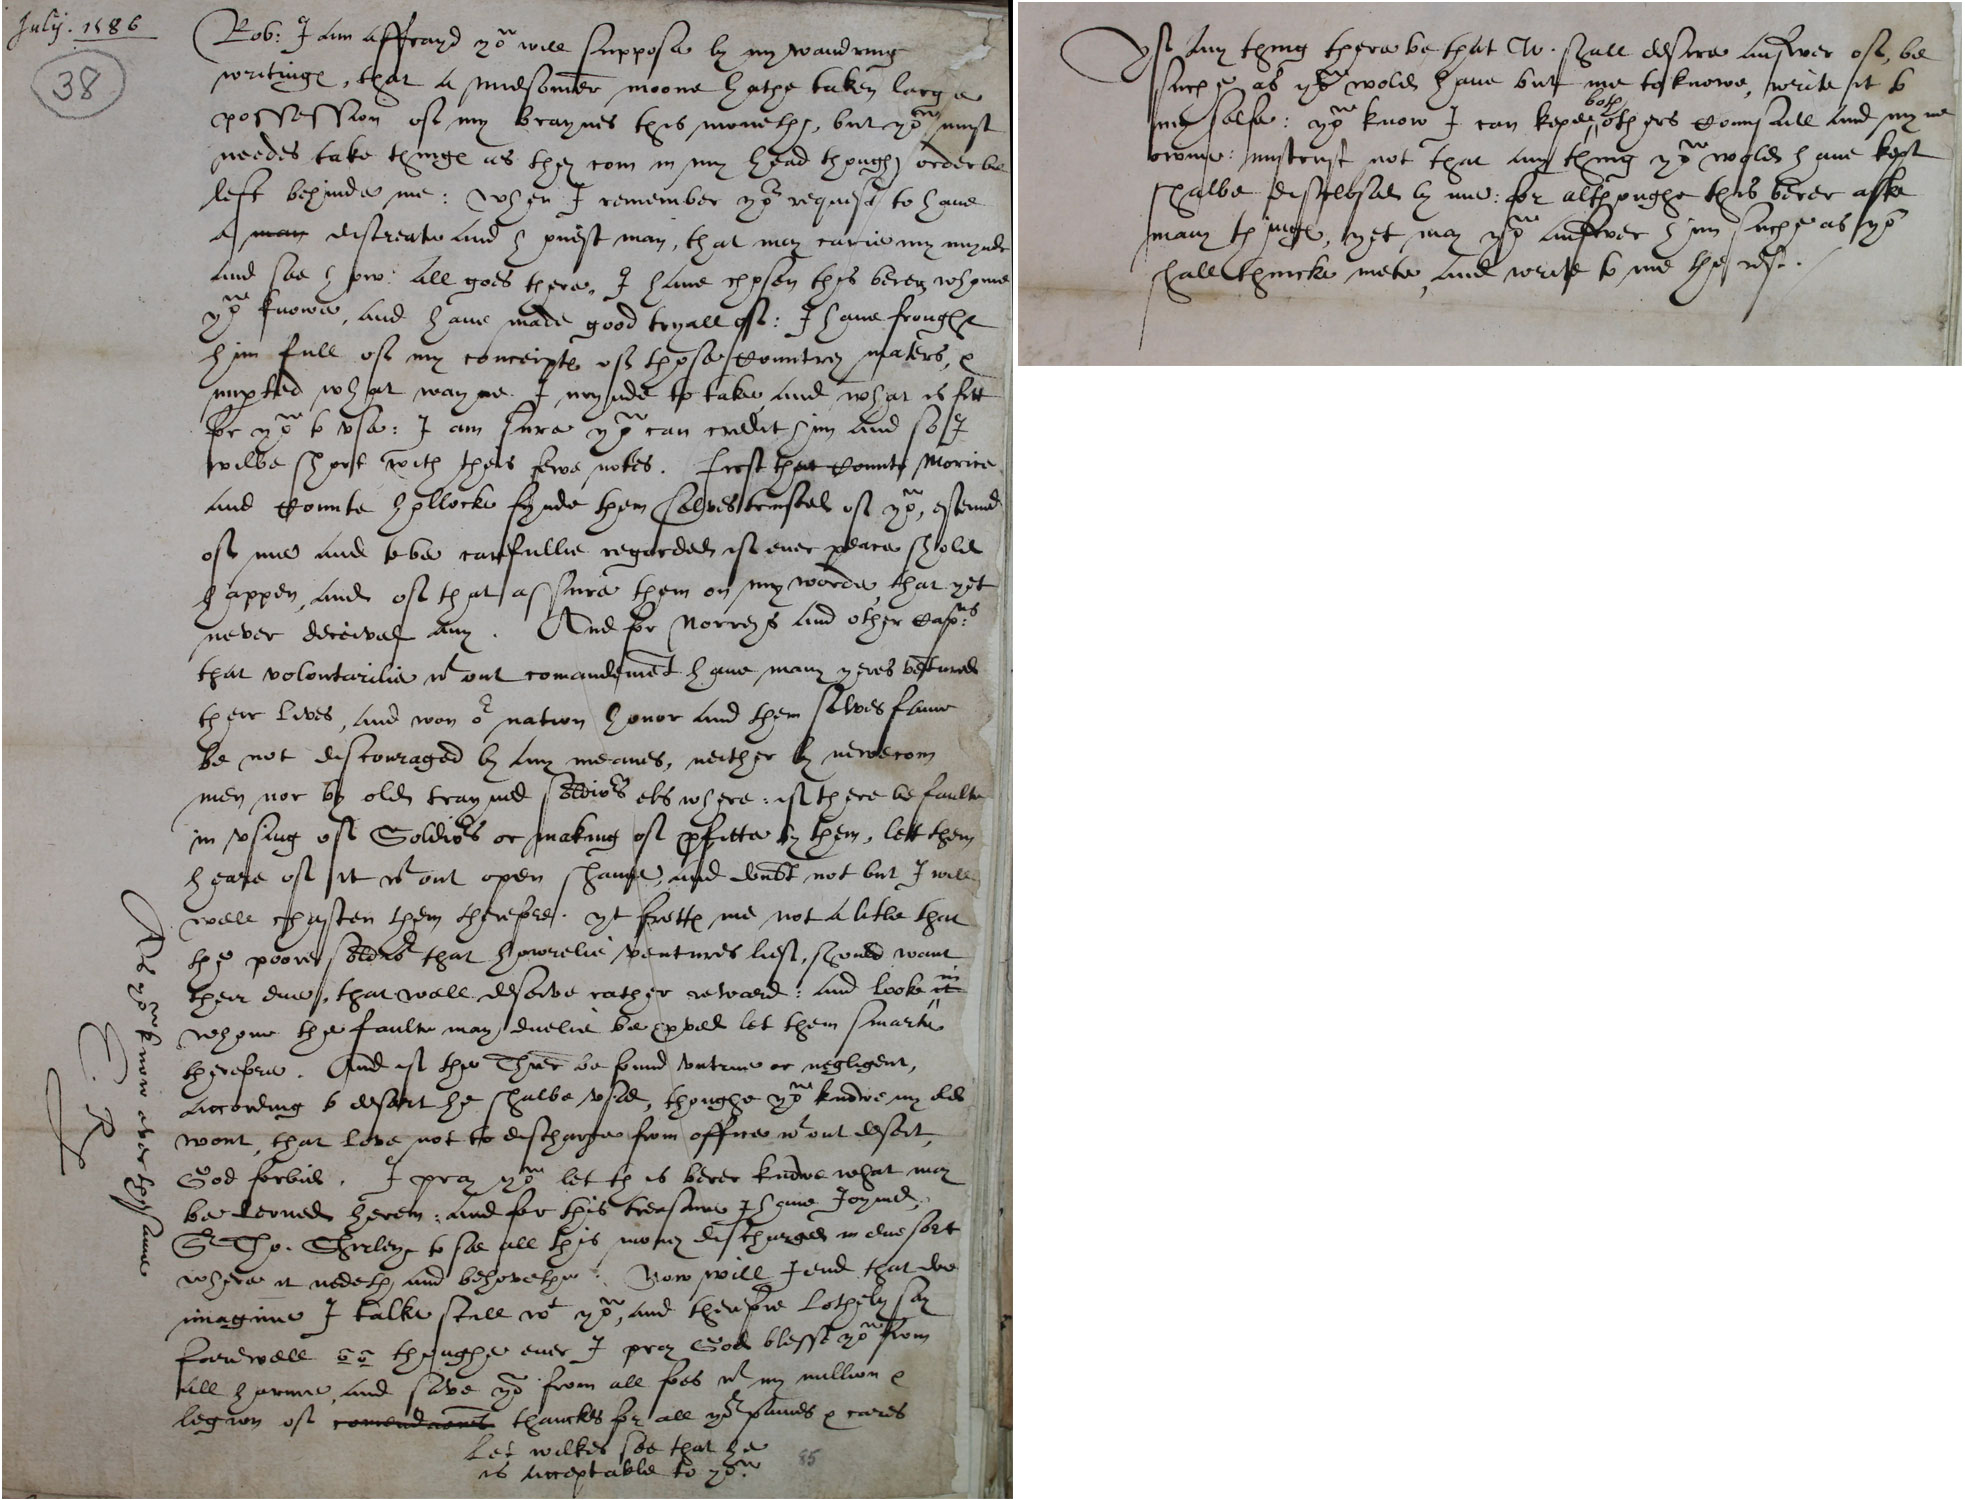 Elizabeth to Robert Dudley, Earl of Leicester, 19 July 1586 (SP 84/9 f.38)